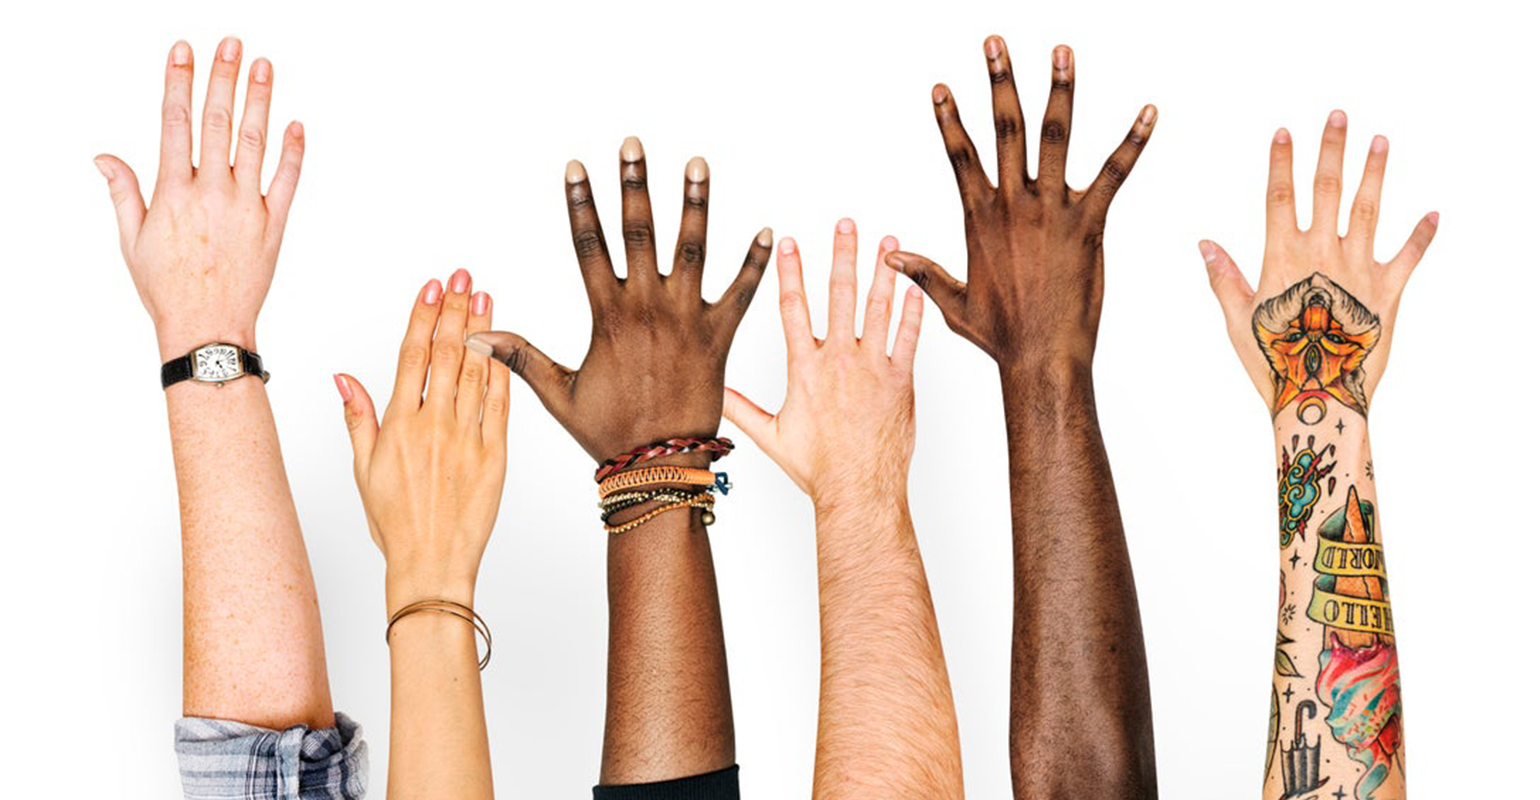 Stericycle CEO Joins in Commitment to Advance Diversity and Inclusion